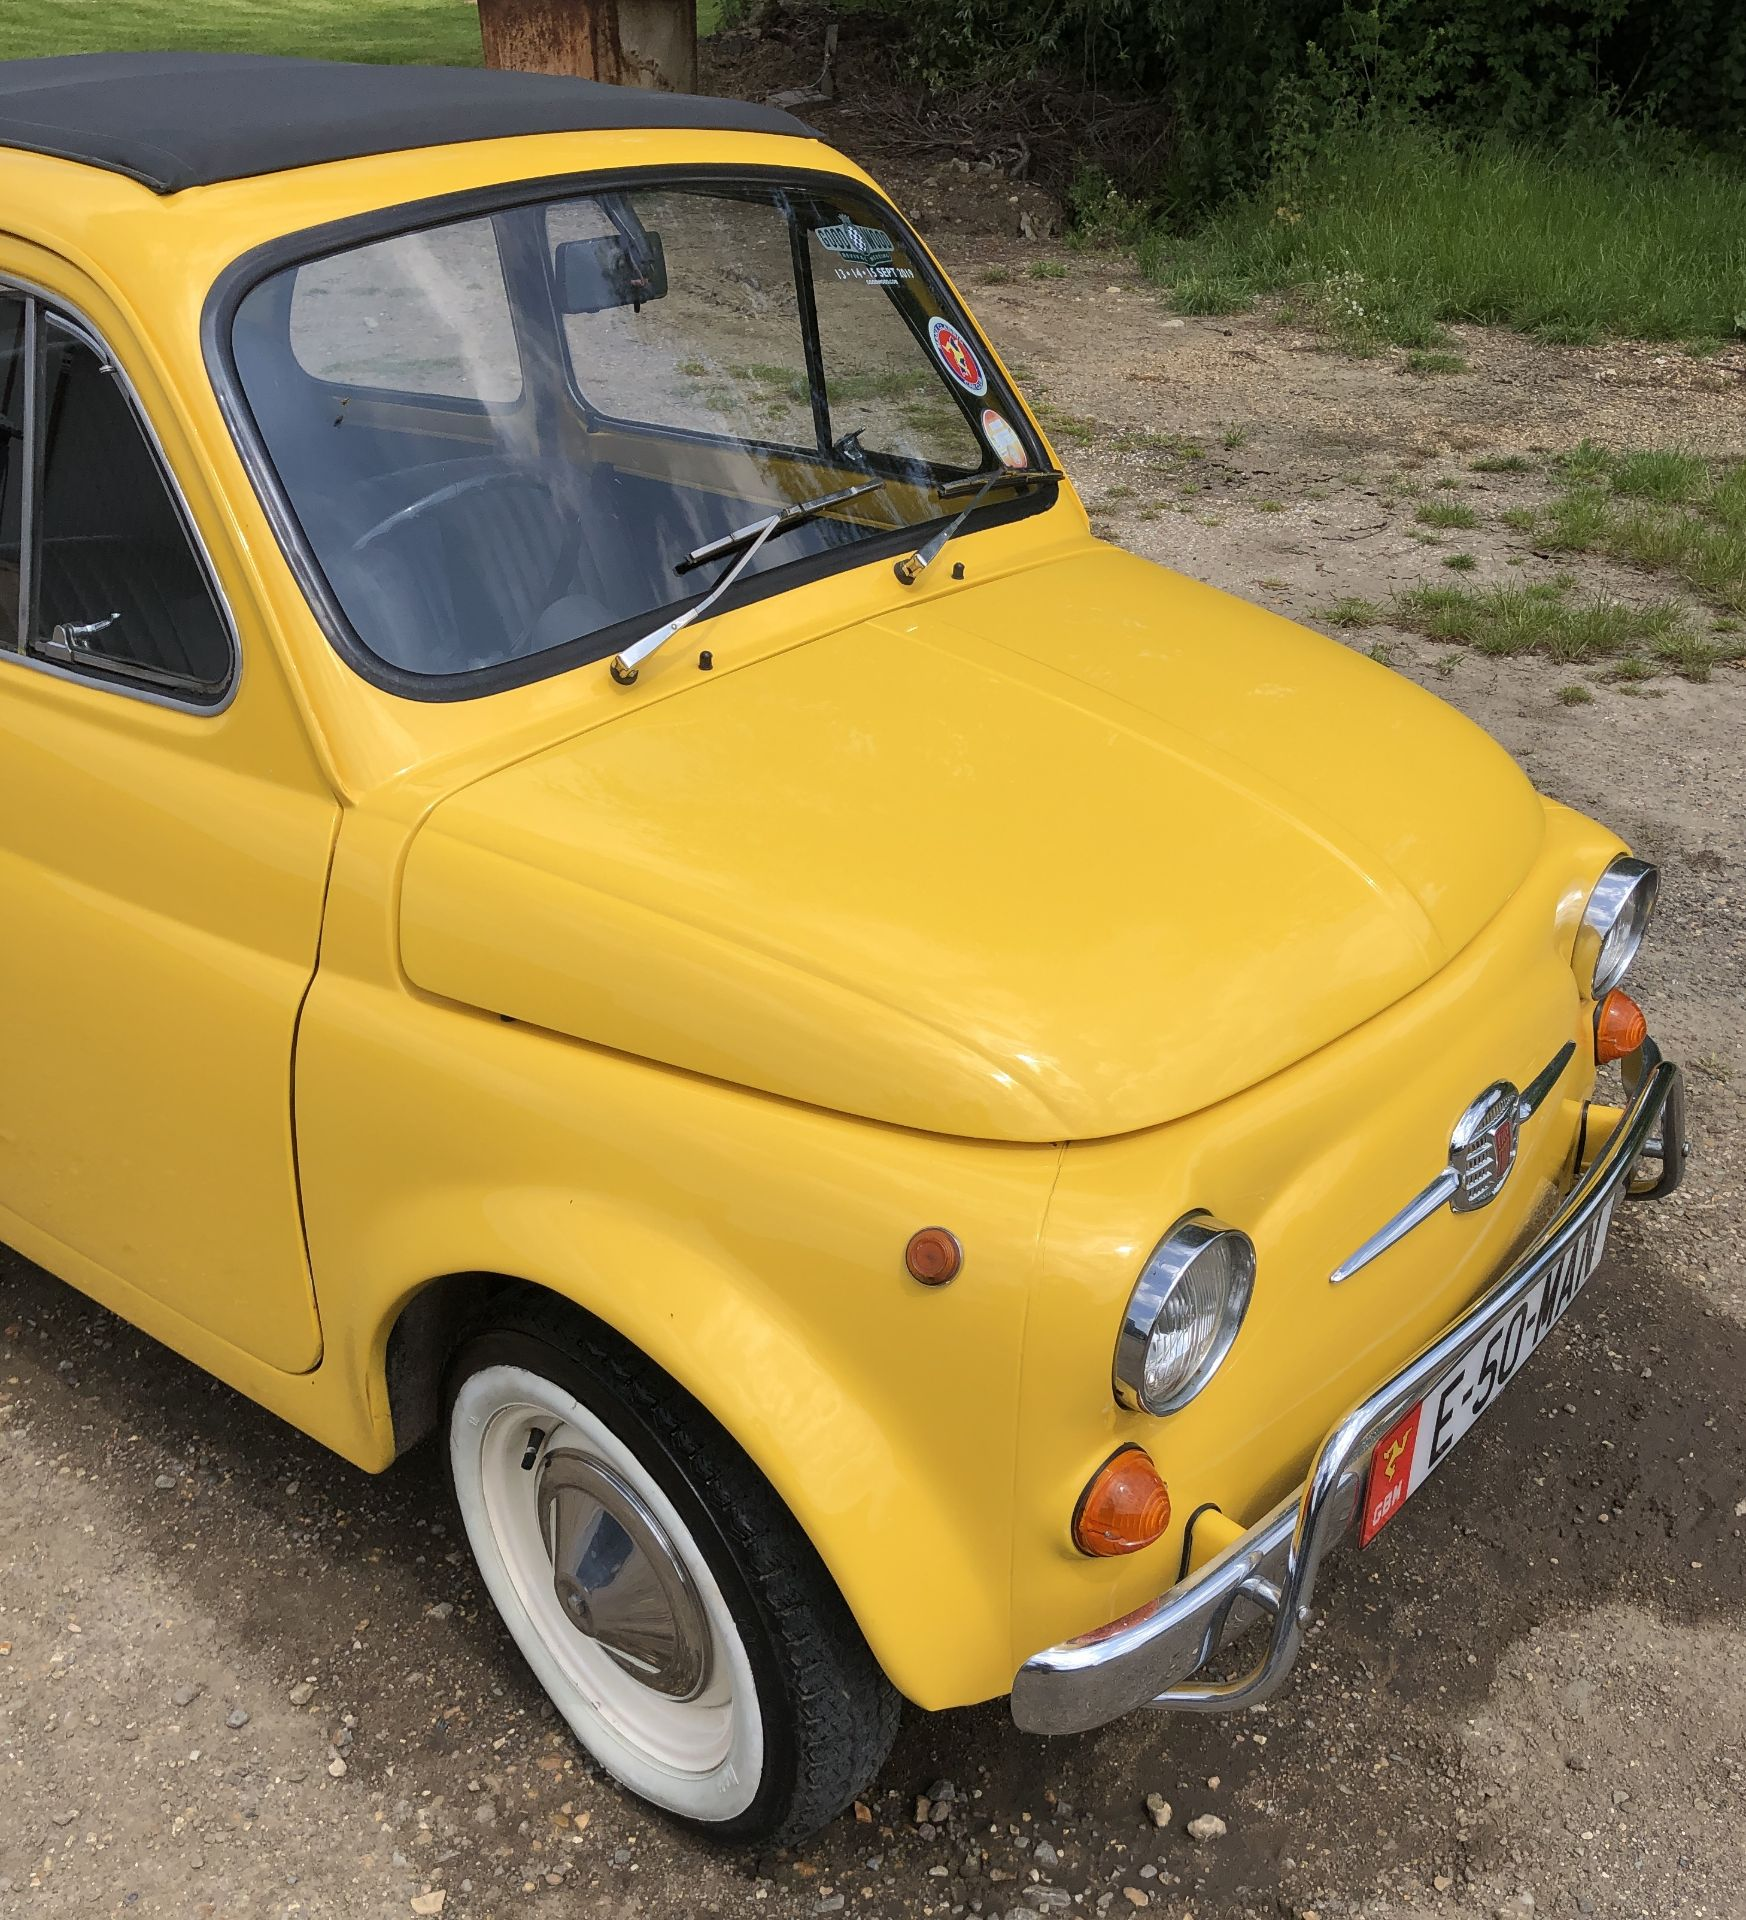 1972 Fiat 500 Saloon, Registration E-50-Man (IOM, Formally Registered as TGF 249L), First Registered - Image 11 of 34